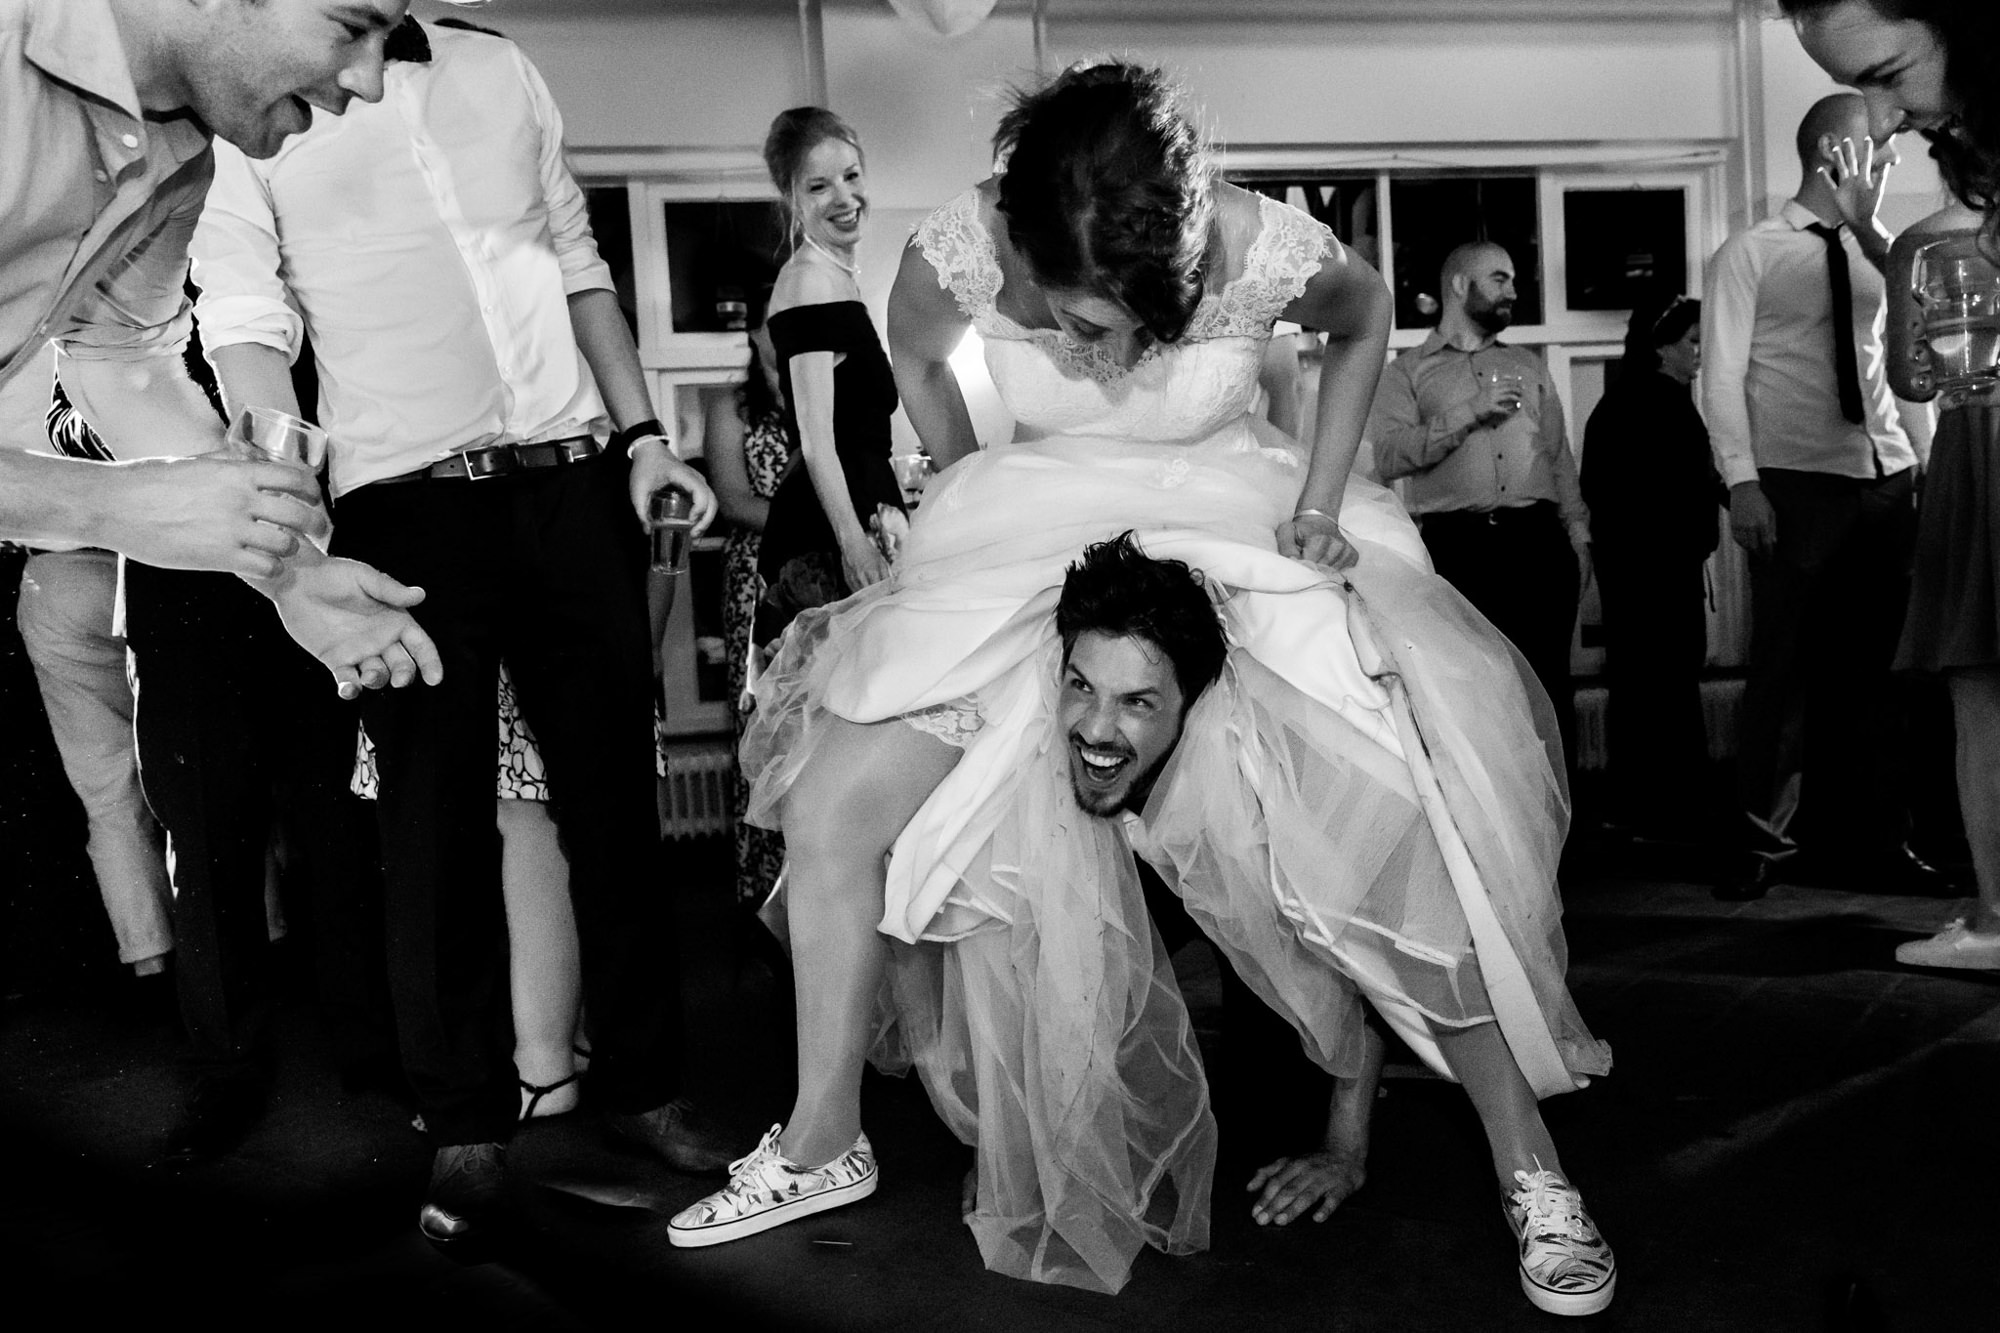 Bride astride groom on dance floor photo by Fotobelle: Isabelle Hattink